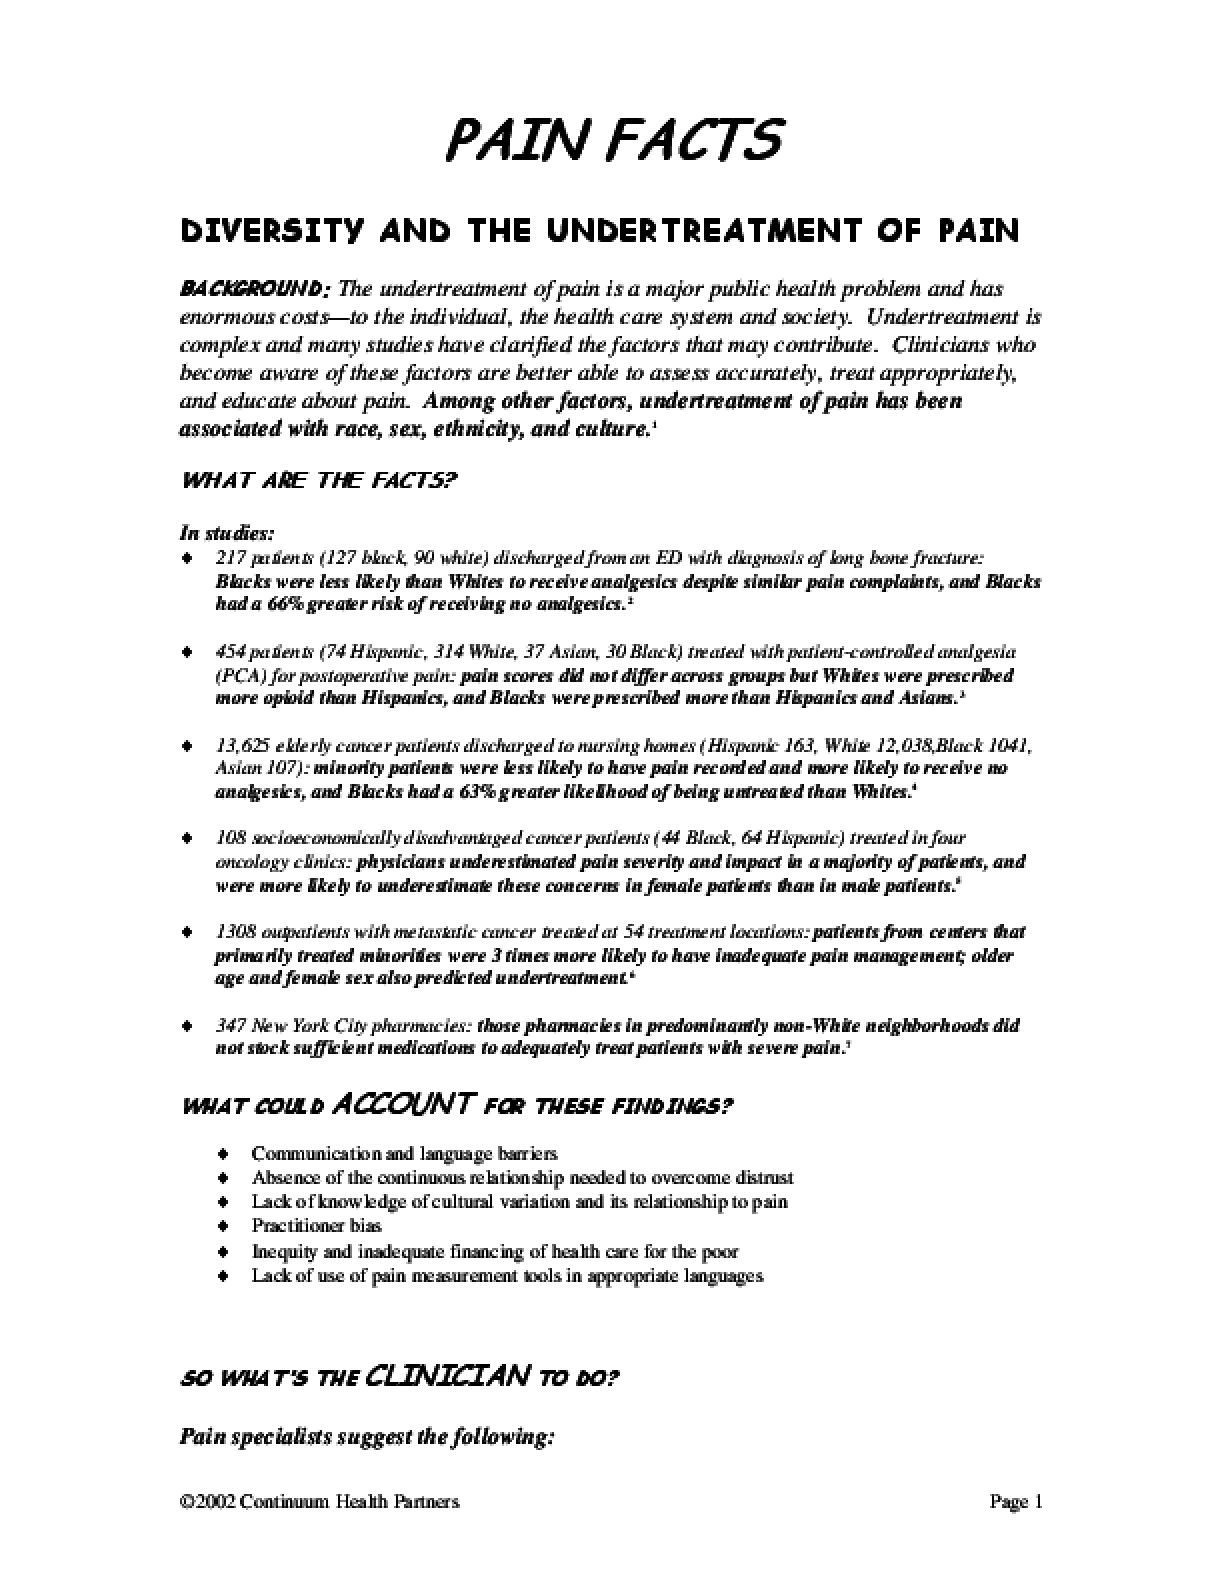 Diversity and the Undertreatment of Pain